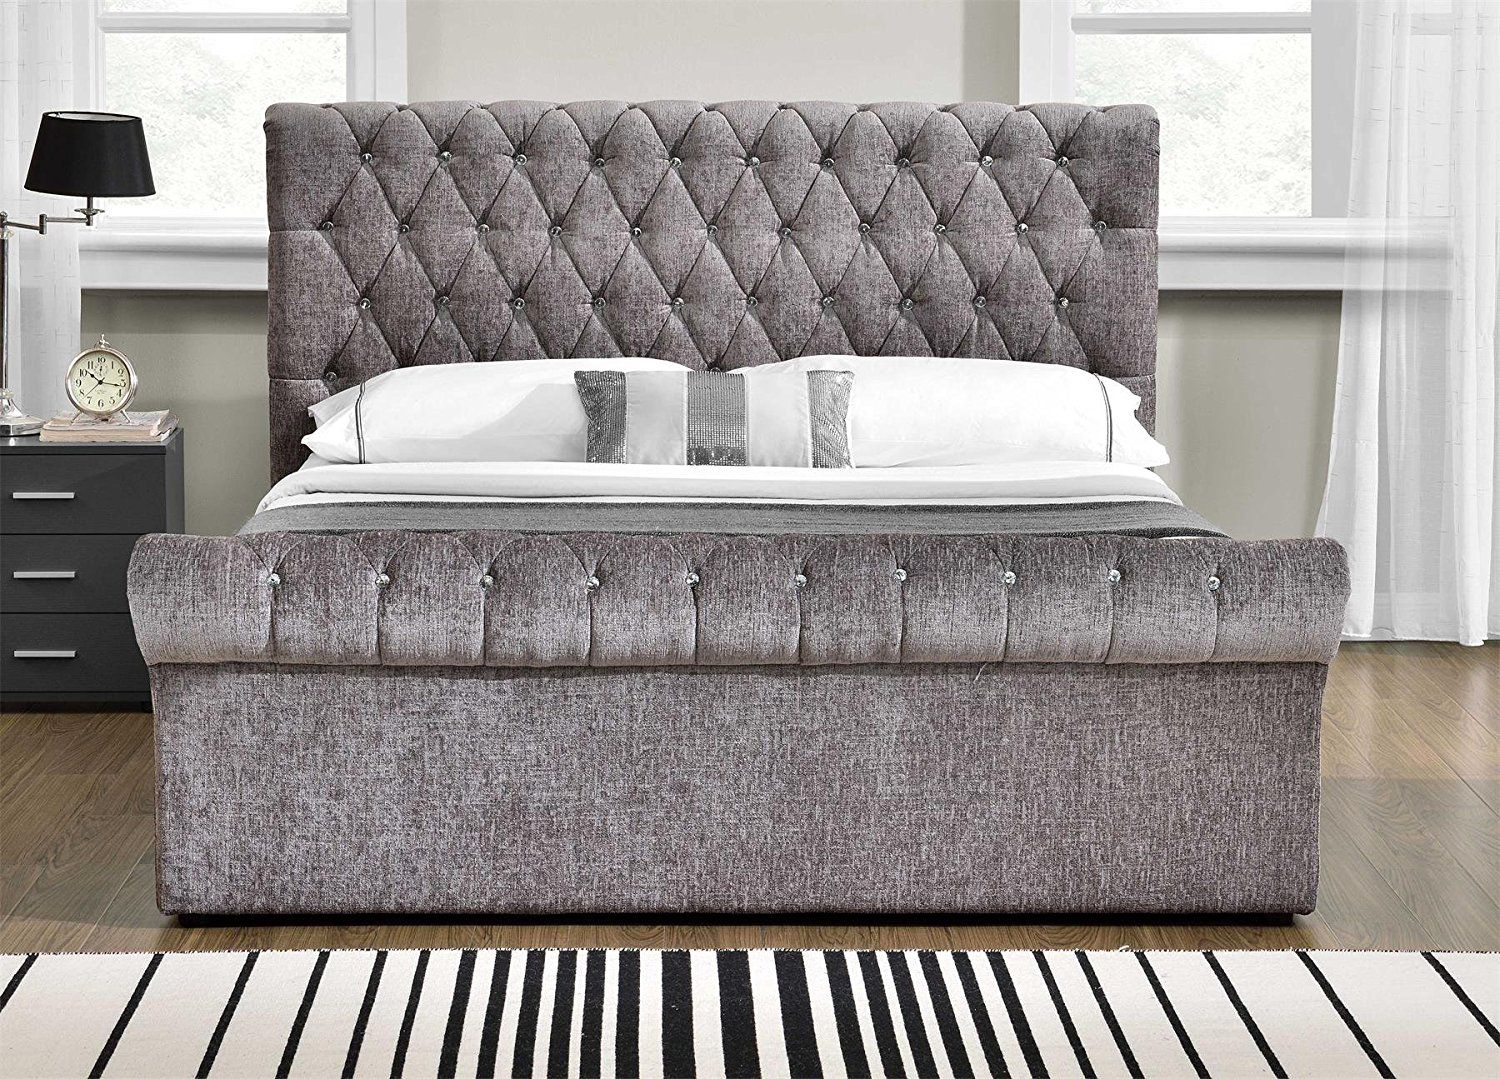 Unmatchable Velvet Chenille Ottoman Storage Fabric Bed Frame Double Or King Size Bedroom New Chenille Ottoman Bed Upholstered Bed Frame Bed Frame With Storage